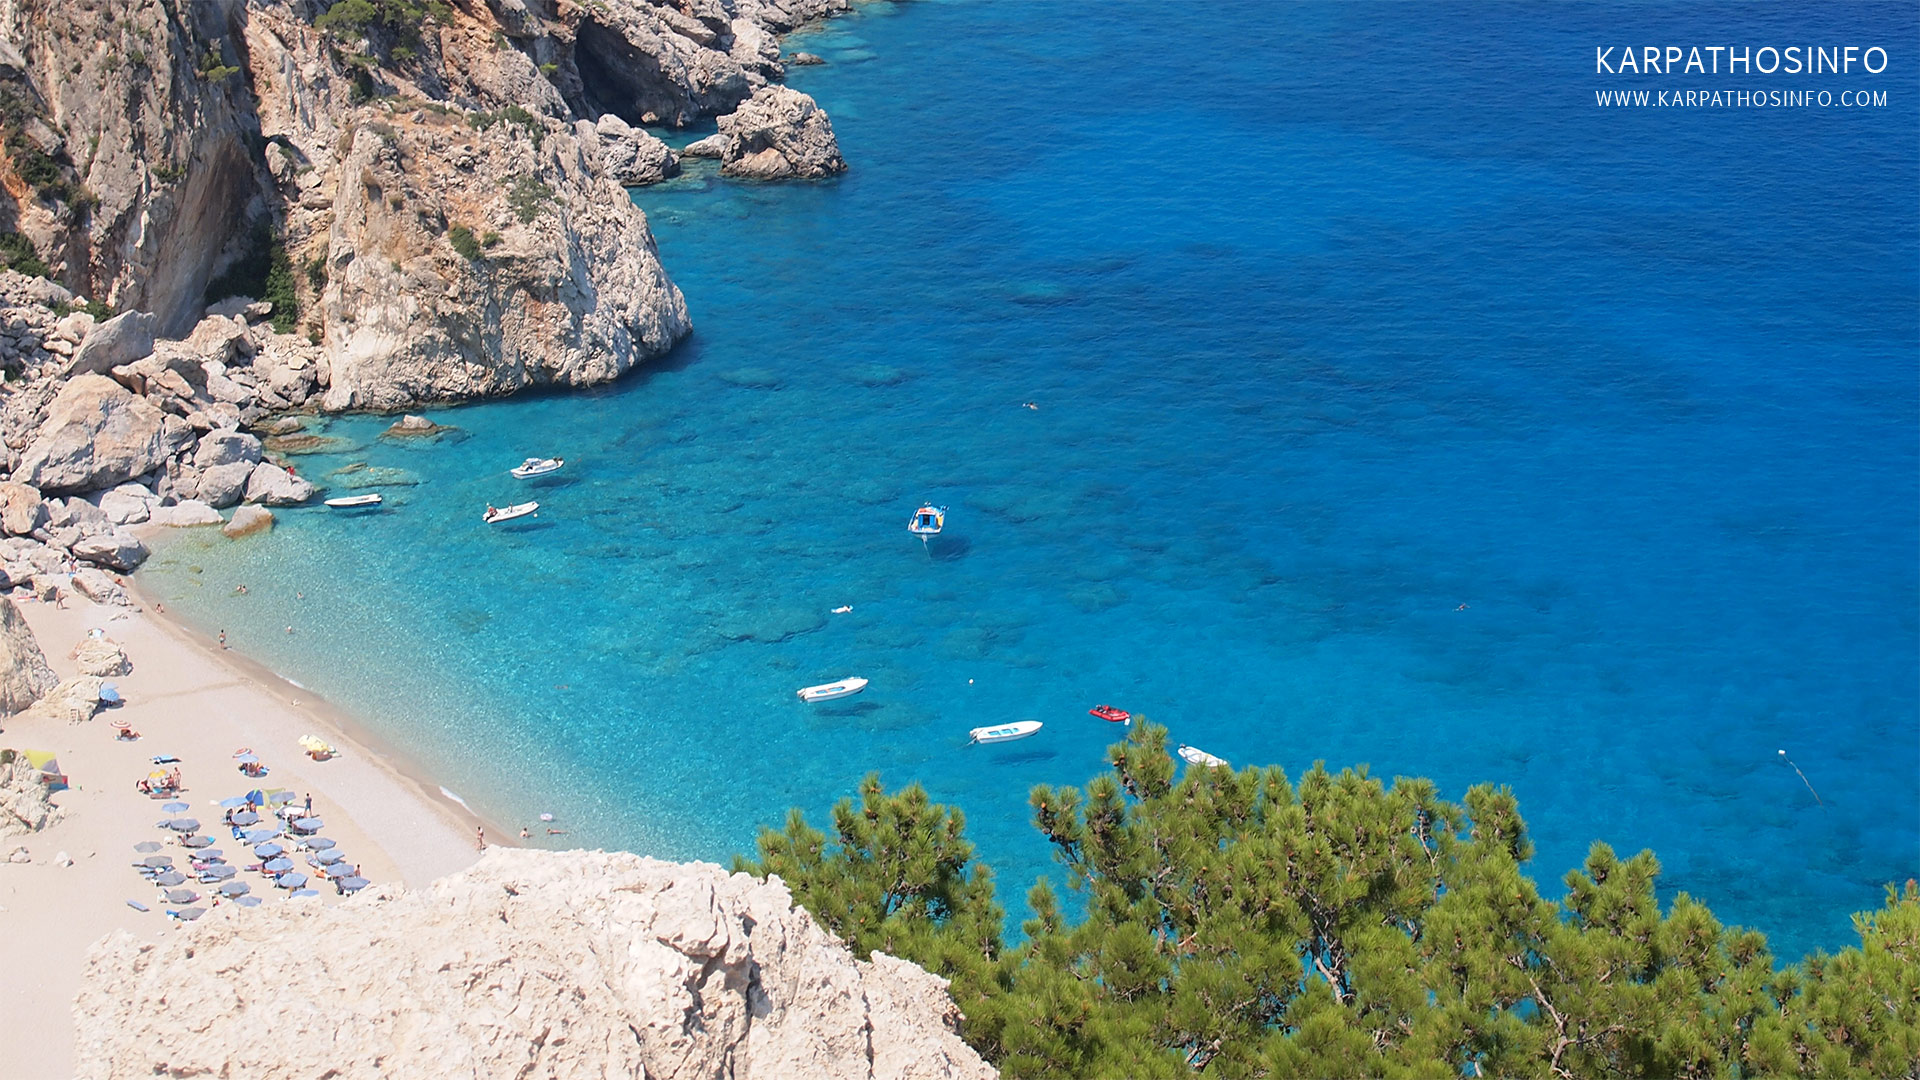 images/slider/best-beaches-in-karpathos.jpg